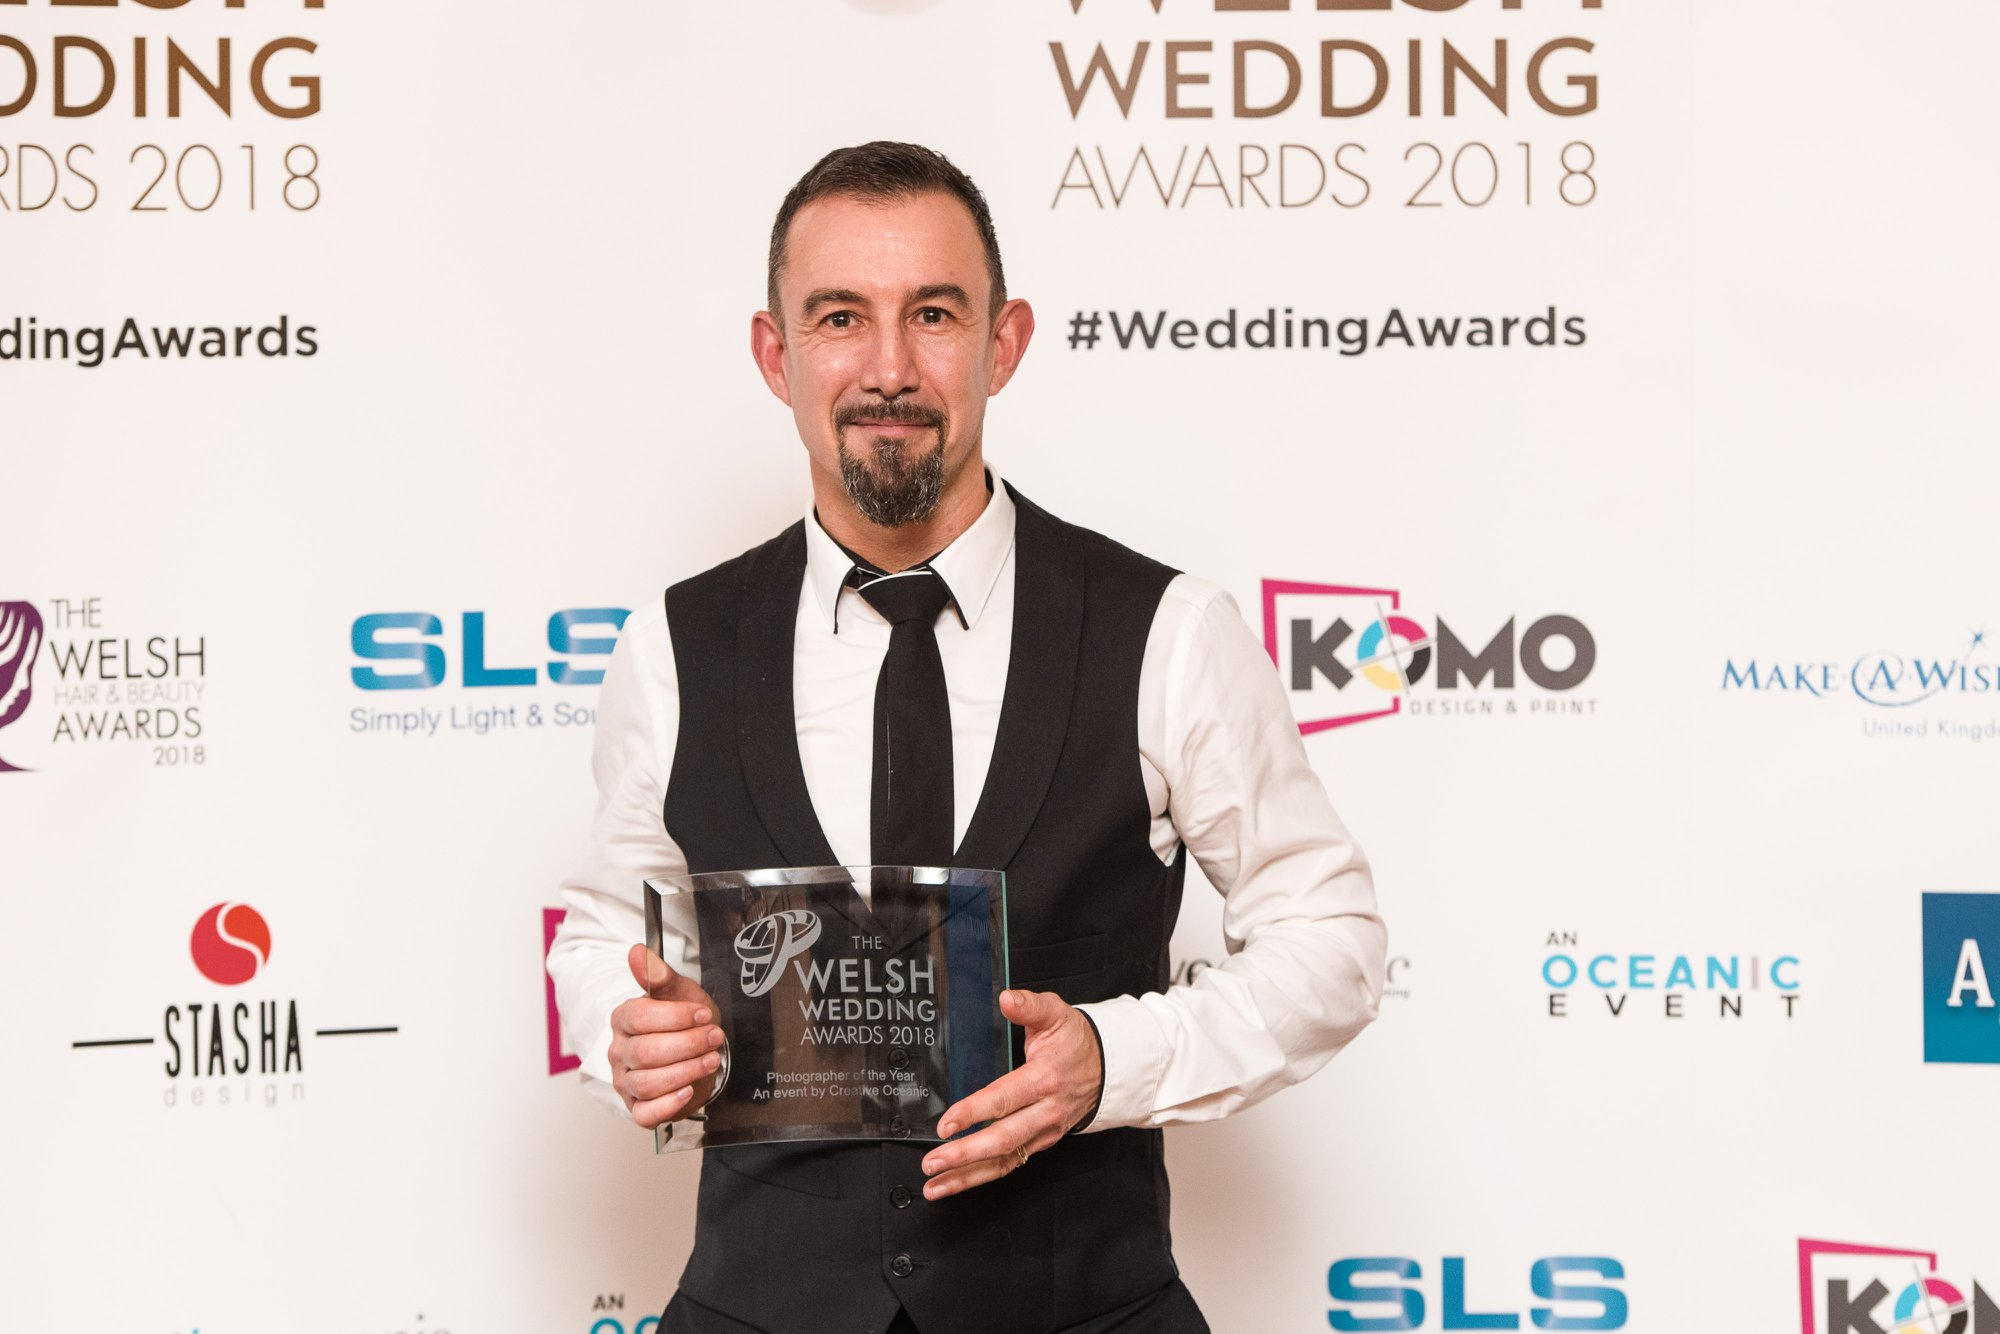 Welsh Wedding Photographer of the year 2018 - The Welsh Wedding Awards 2018